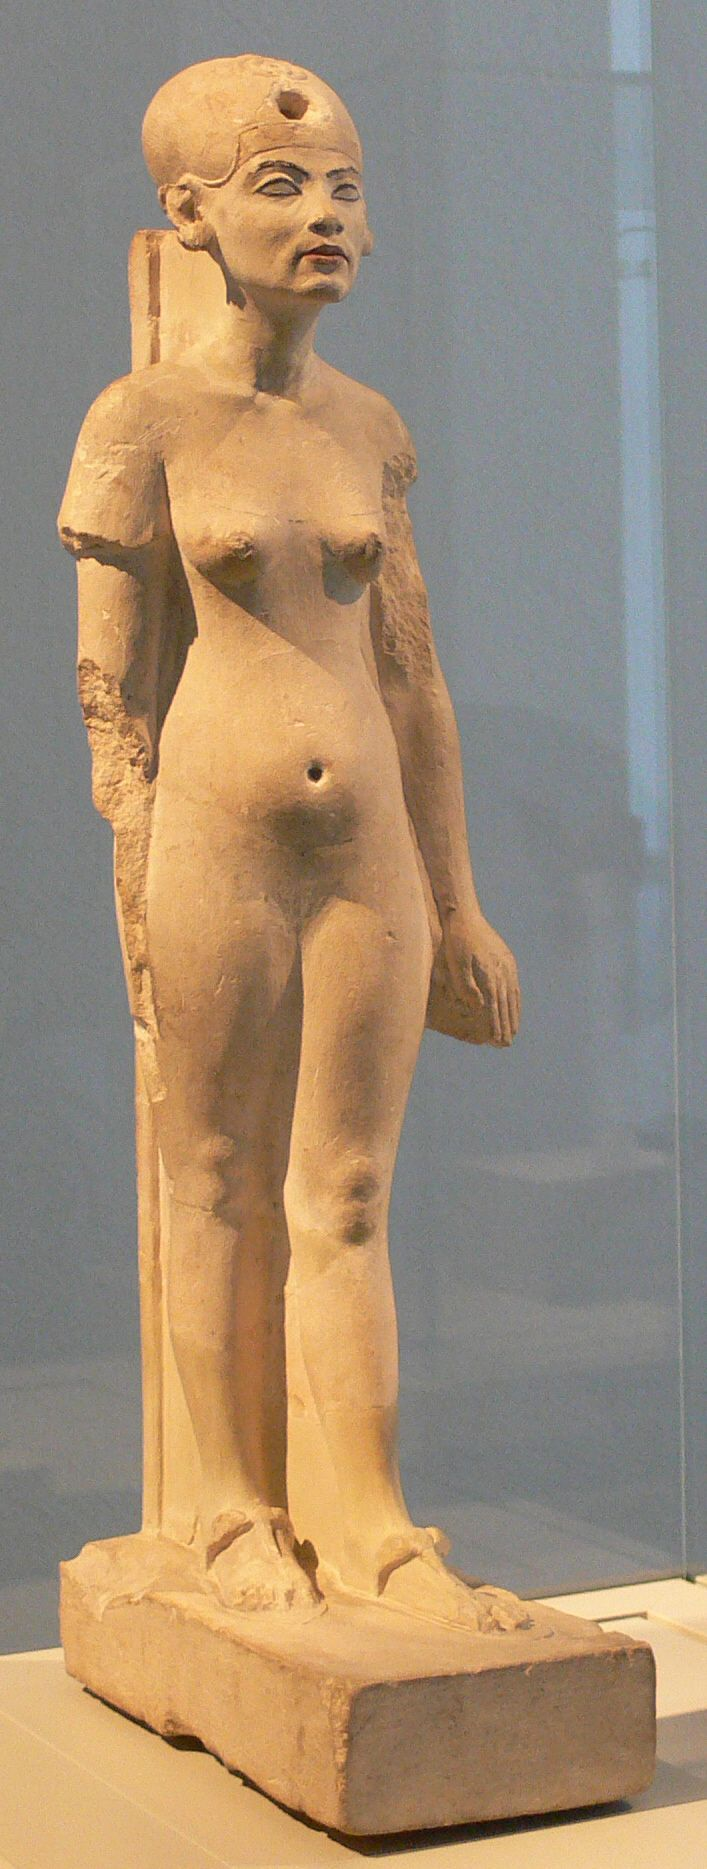 Standing-striding figure of Nefertiti - XVIII dynasty (Ägyptisches Museum, Berlin)